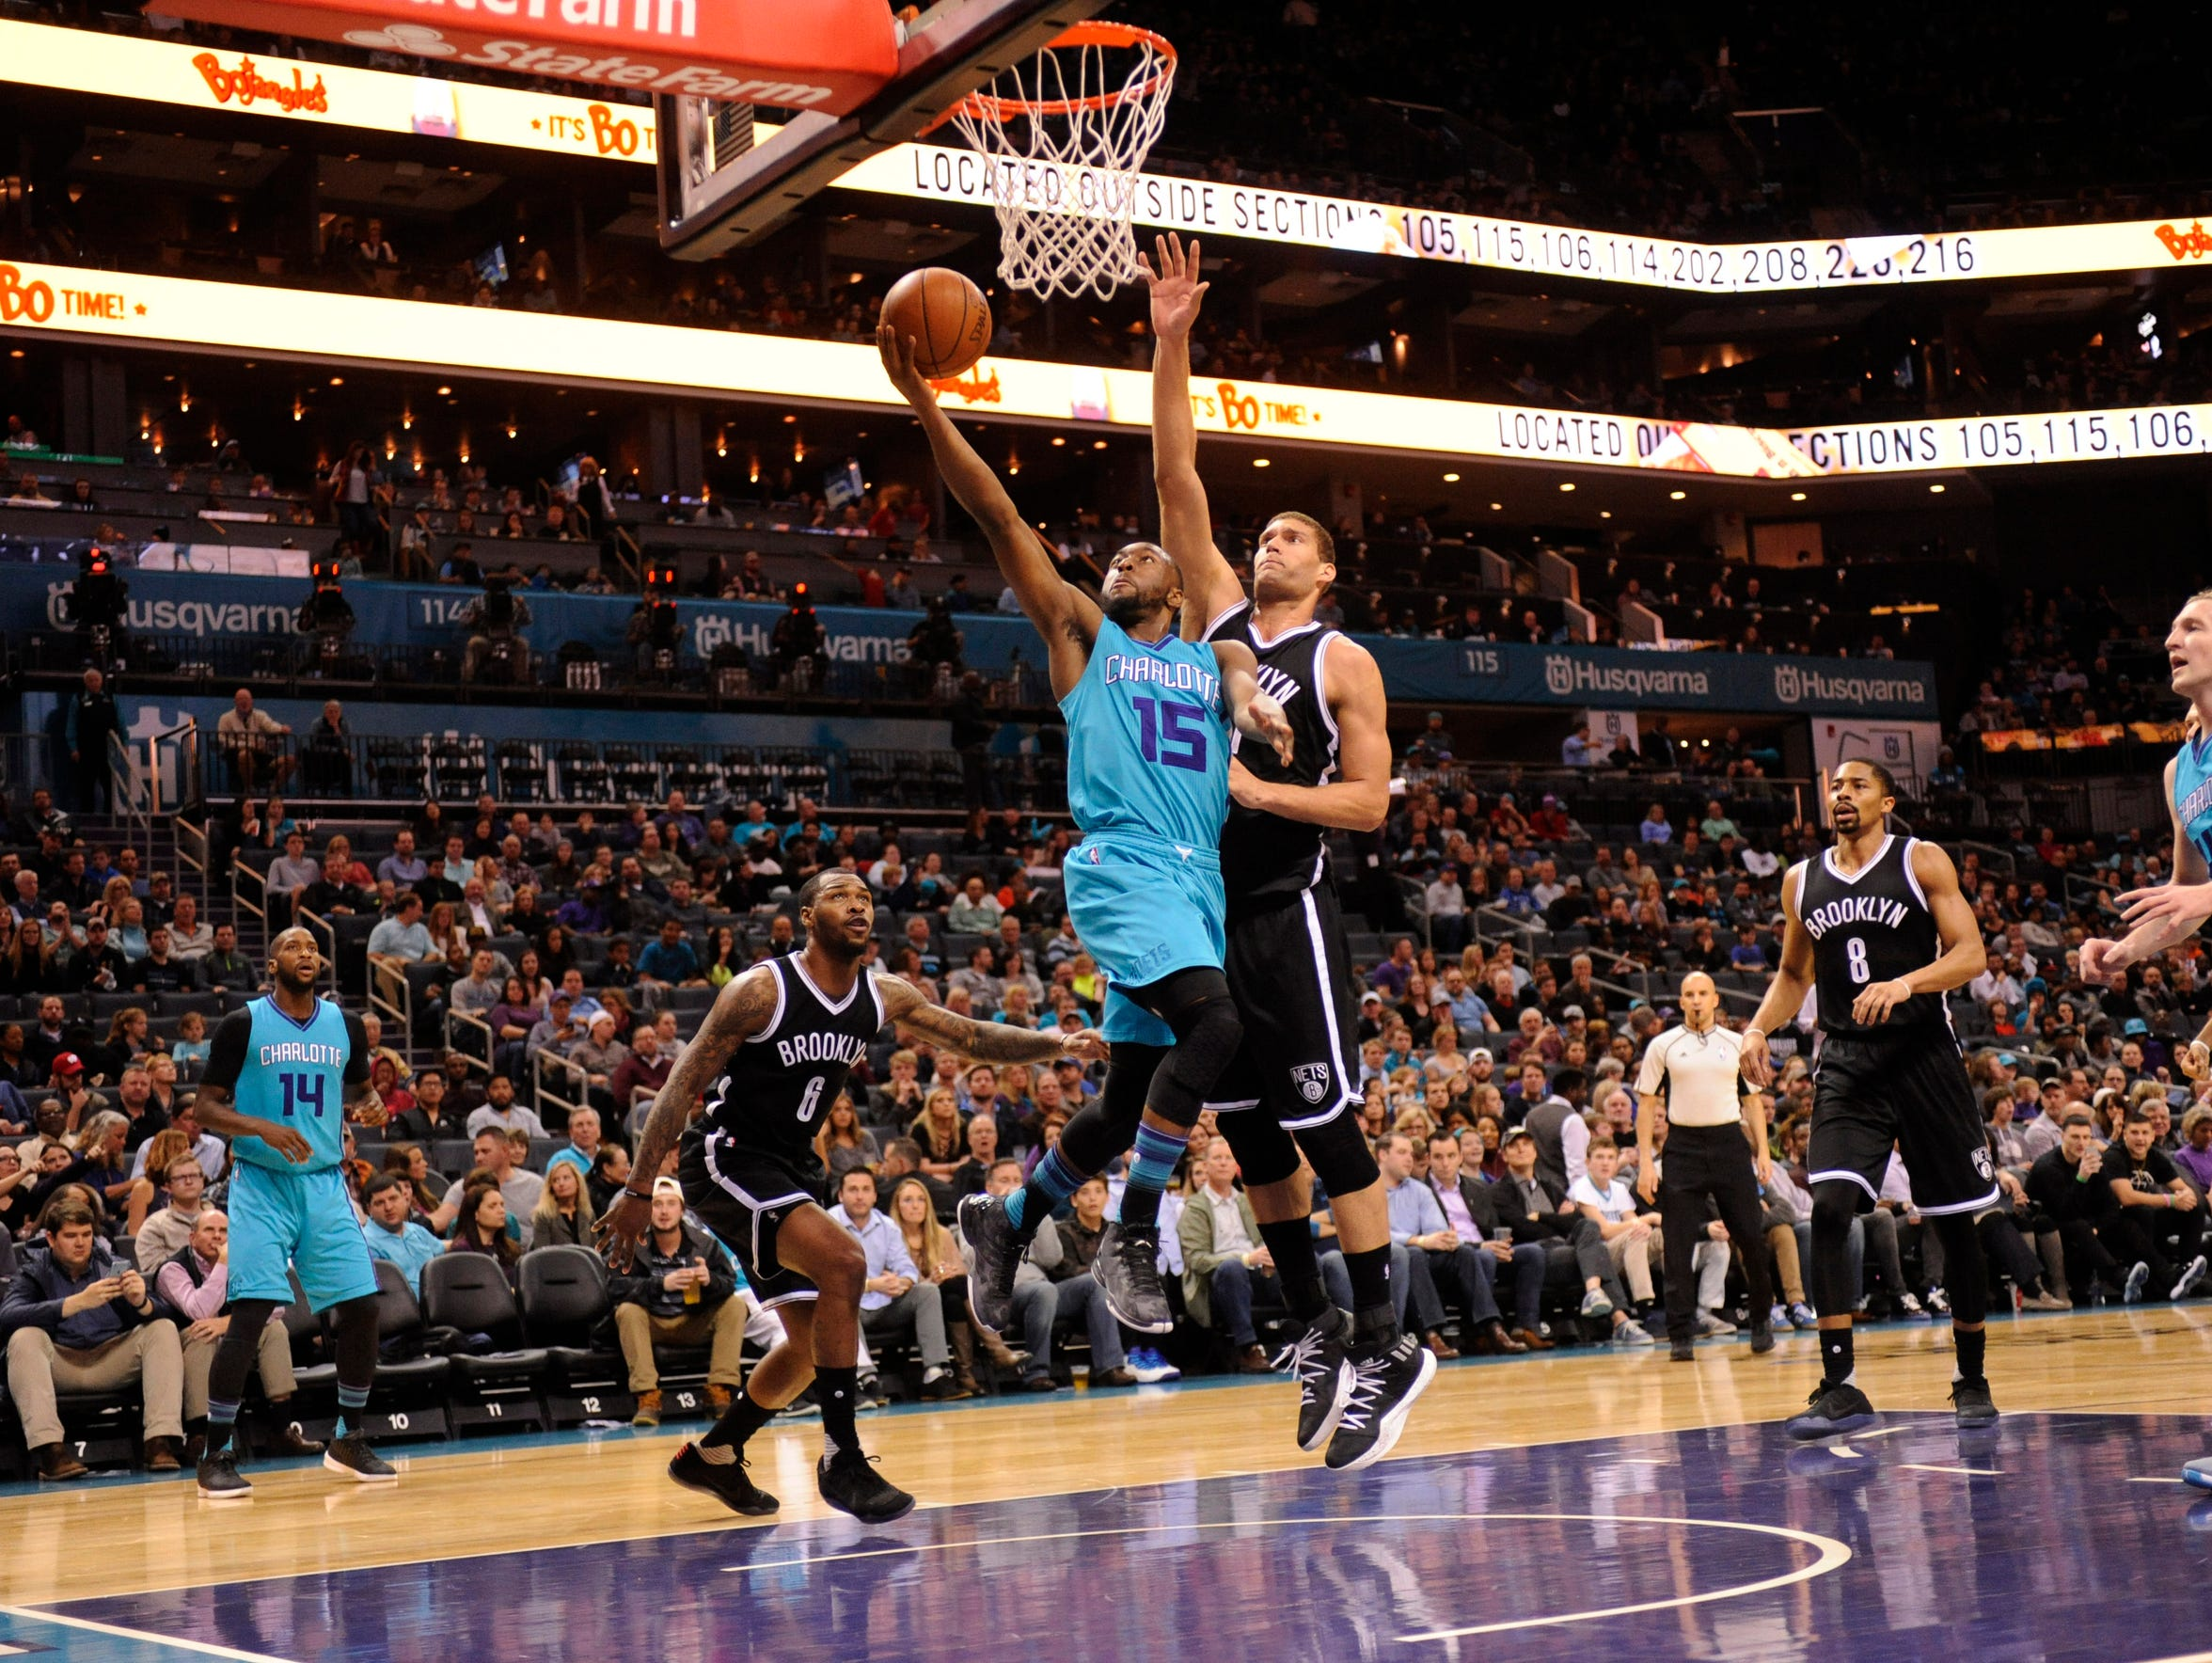 Charlotte Hornets guard Kemba Walker (15) drives to